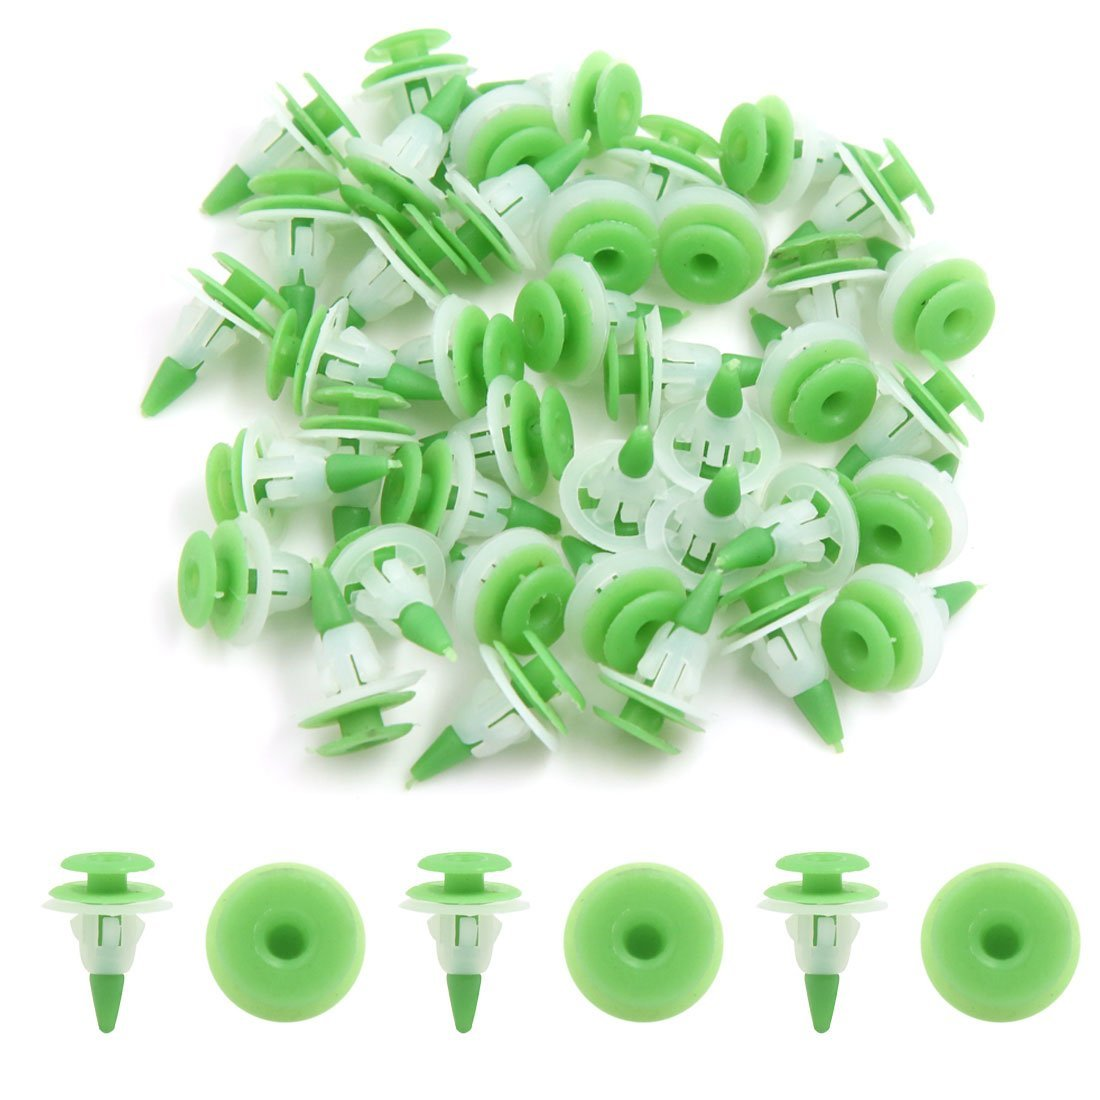 Amazon.com: eDealMax 40Pcs Verde de plástico Blanco de remaches parachoques Fender Moldeo Sujetador Clips de 10mm: Automotive